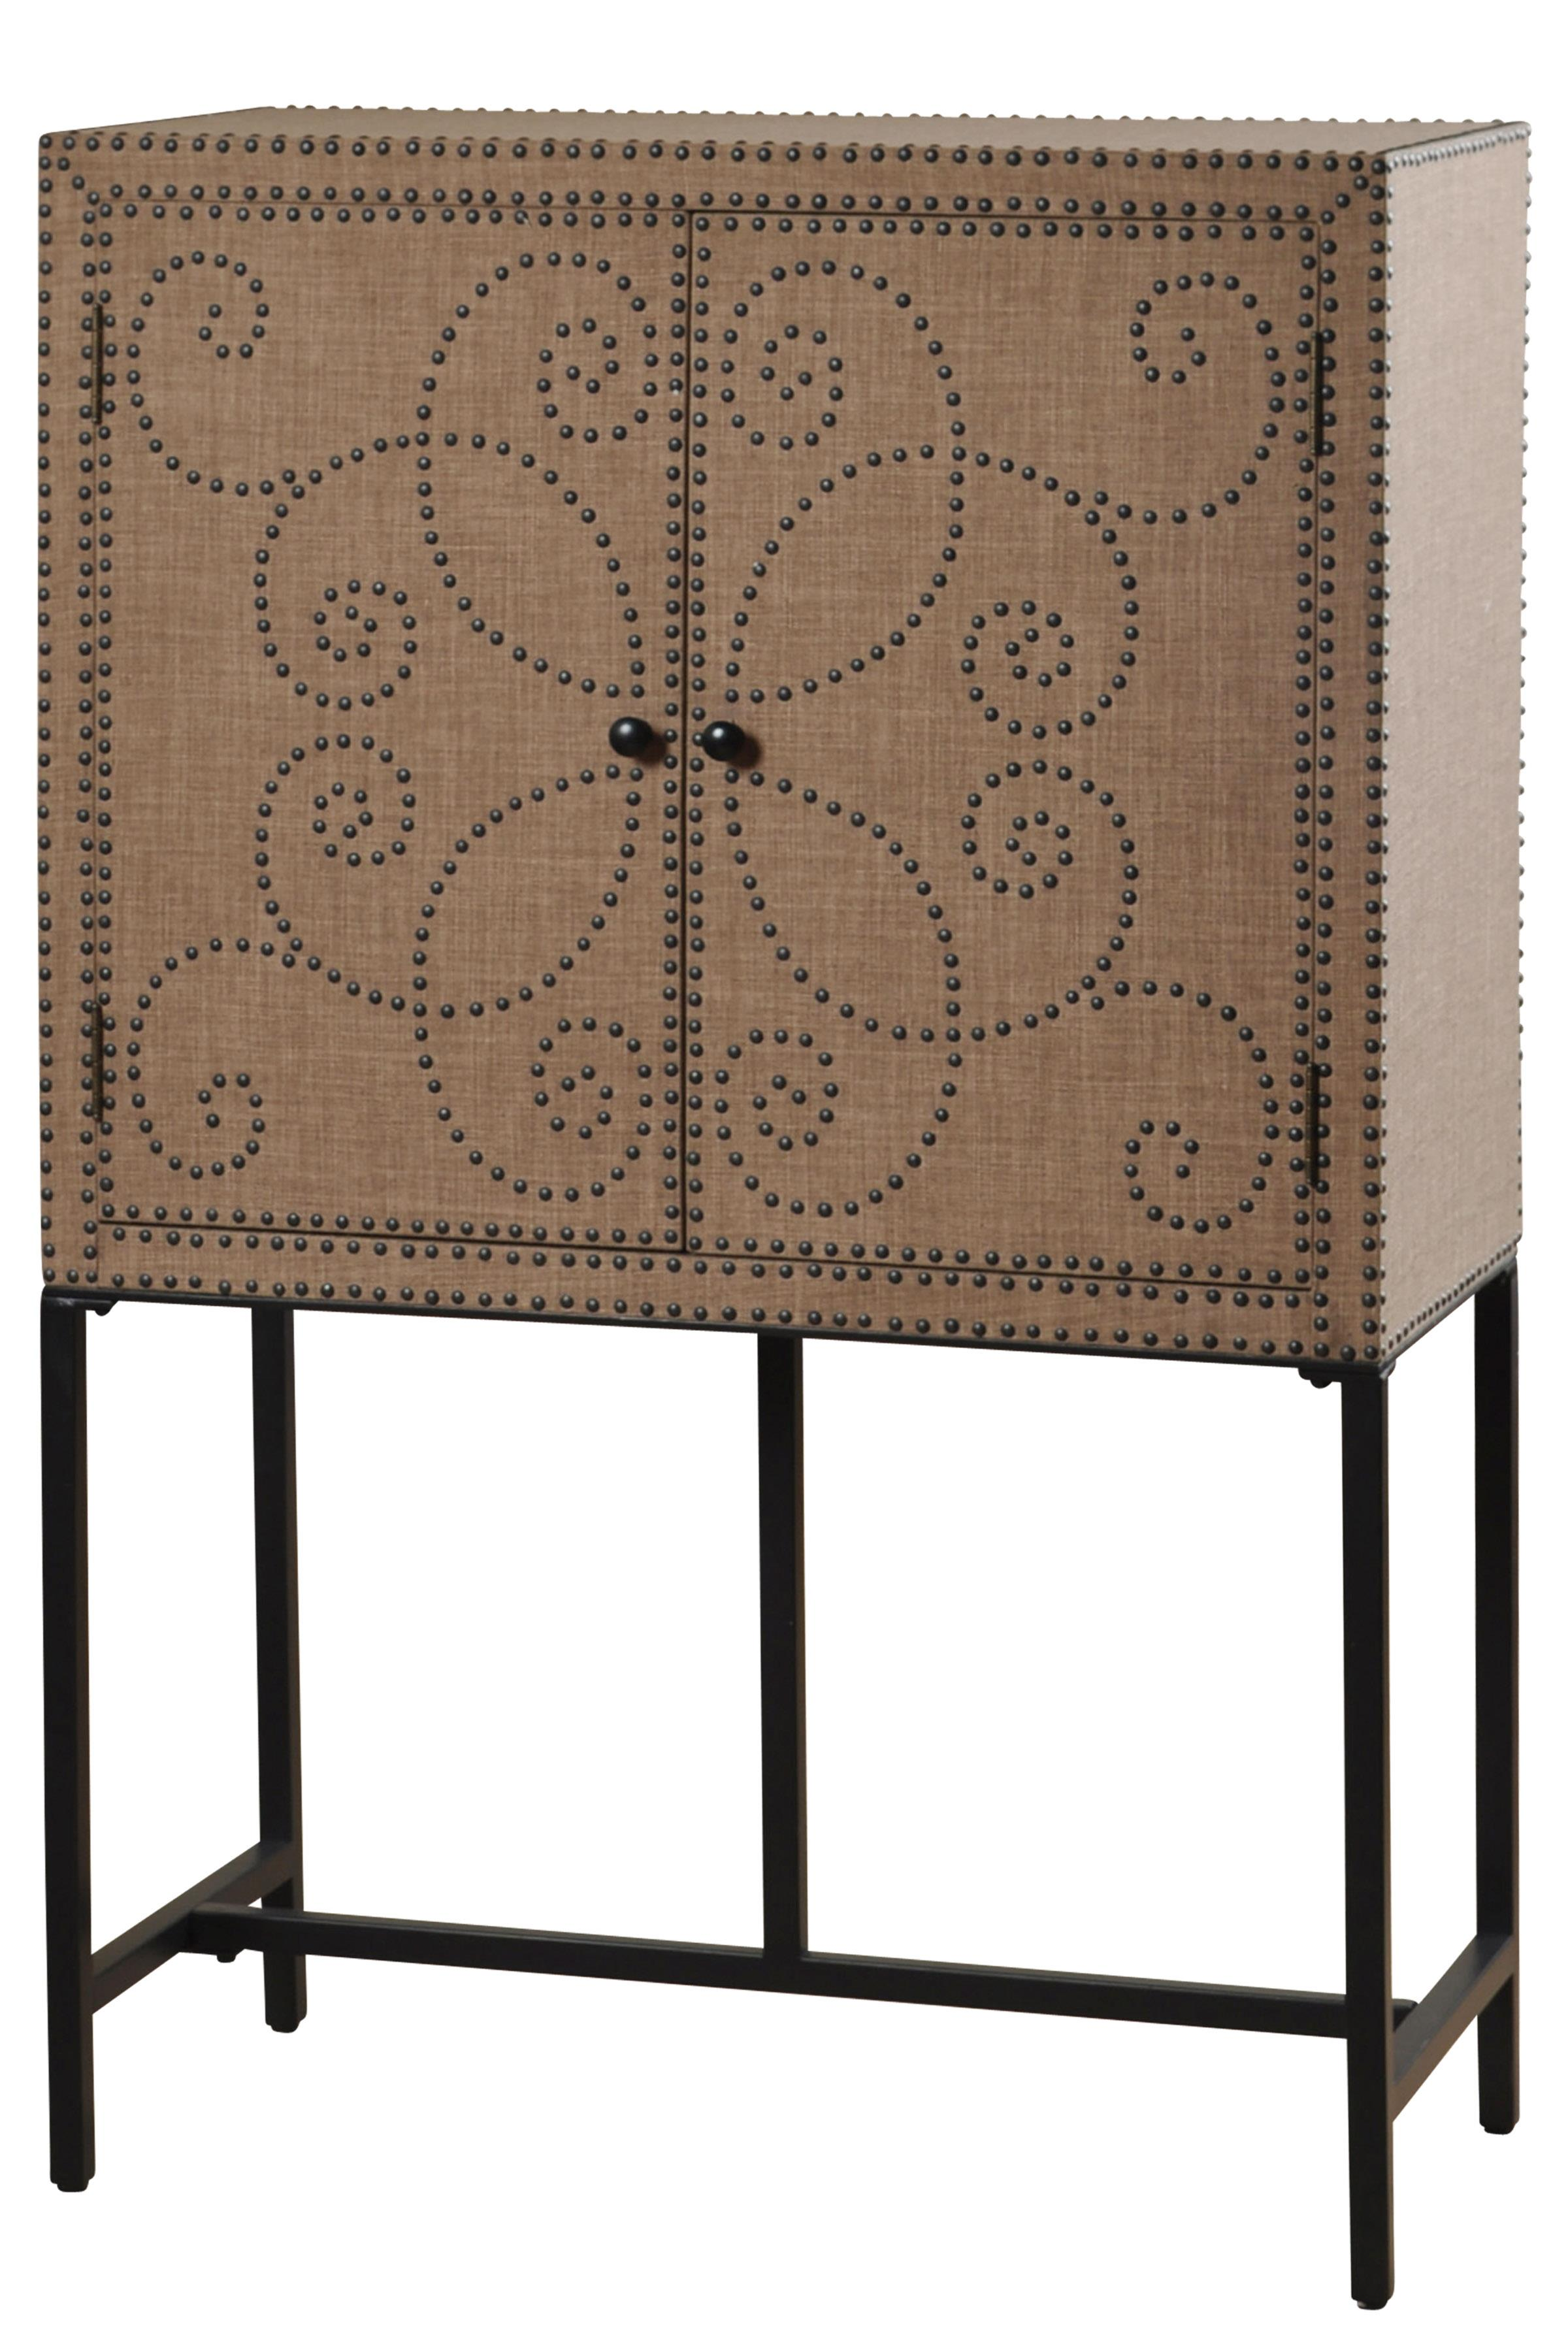 Stylecraft cabinets - Stylecraft Occasional Cabinets Martini Bar Item Number Sf2340